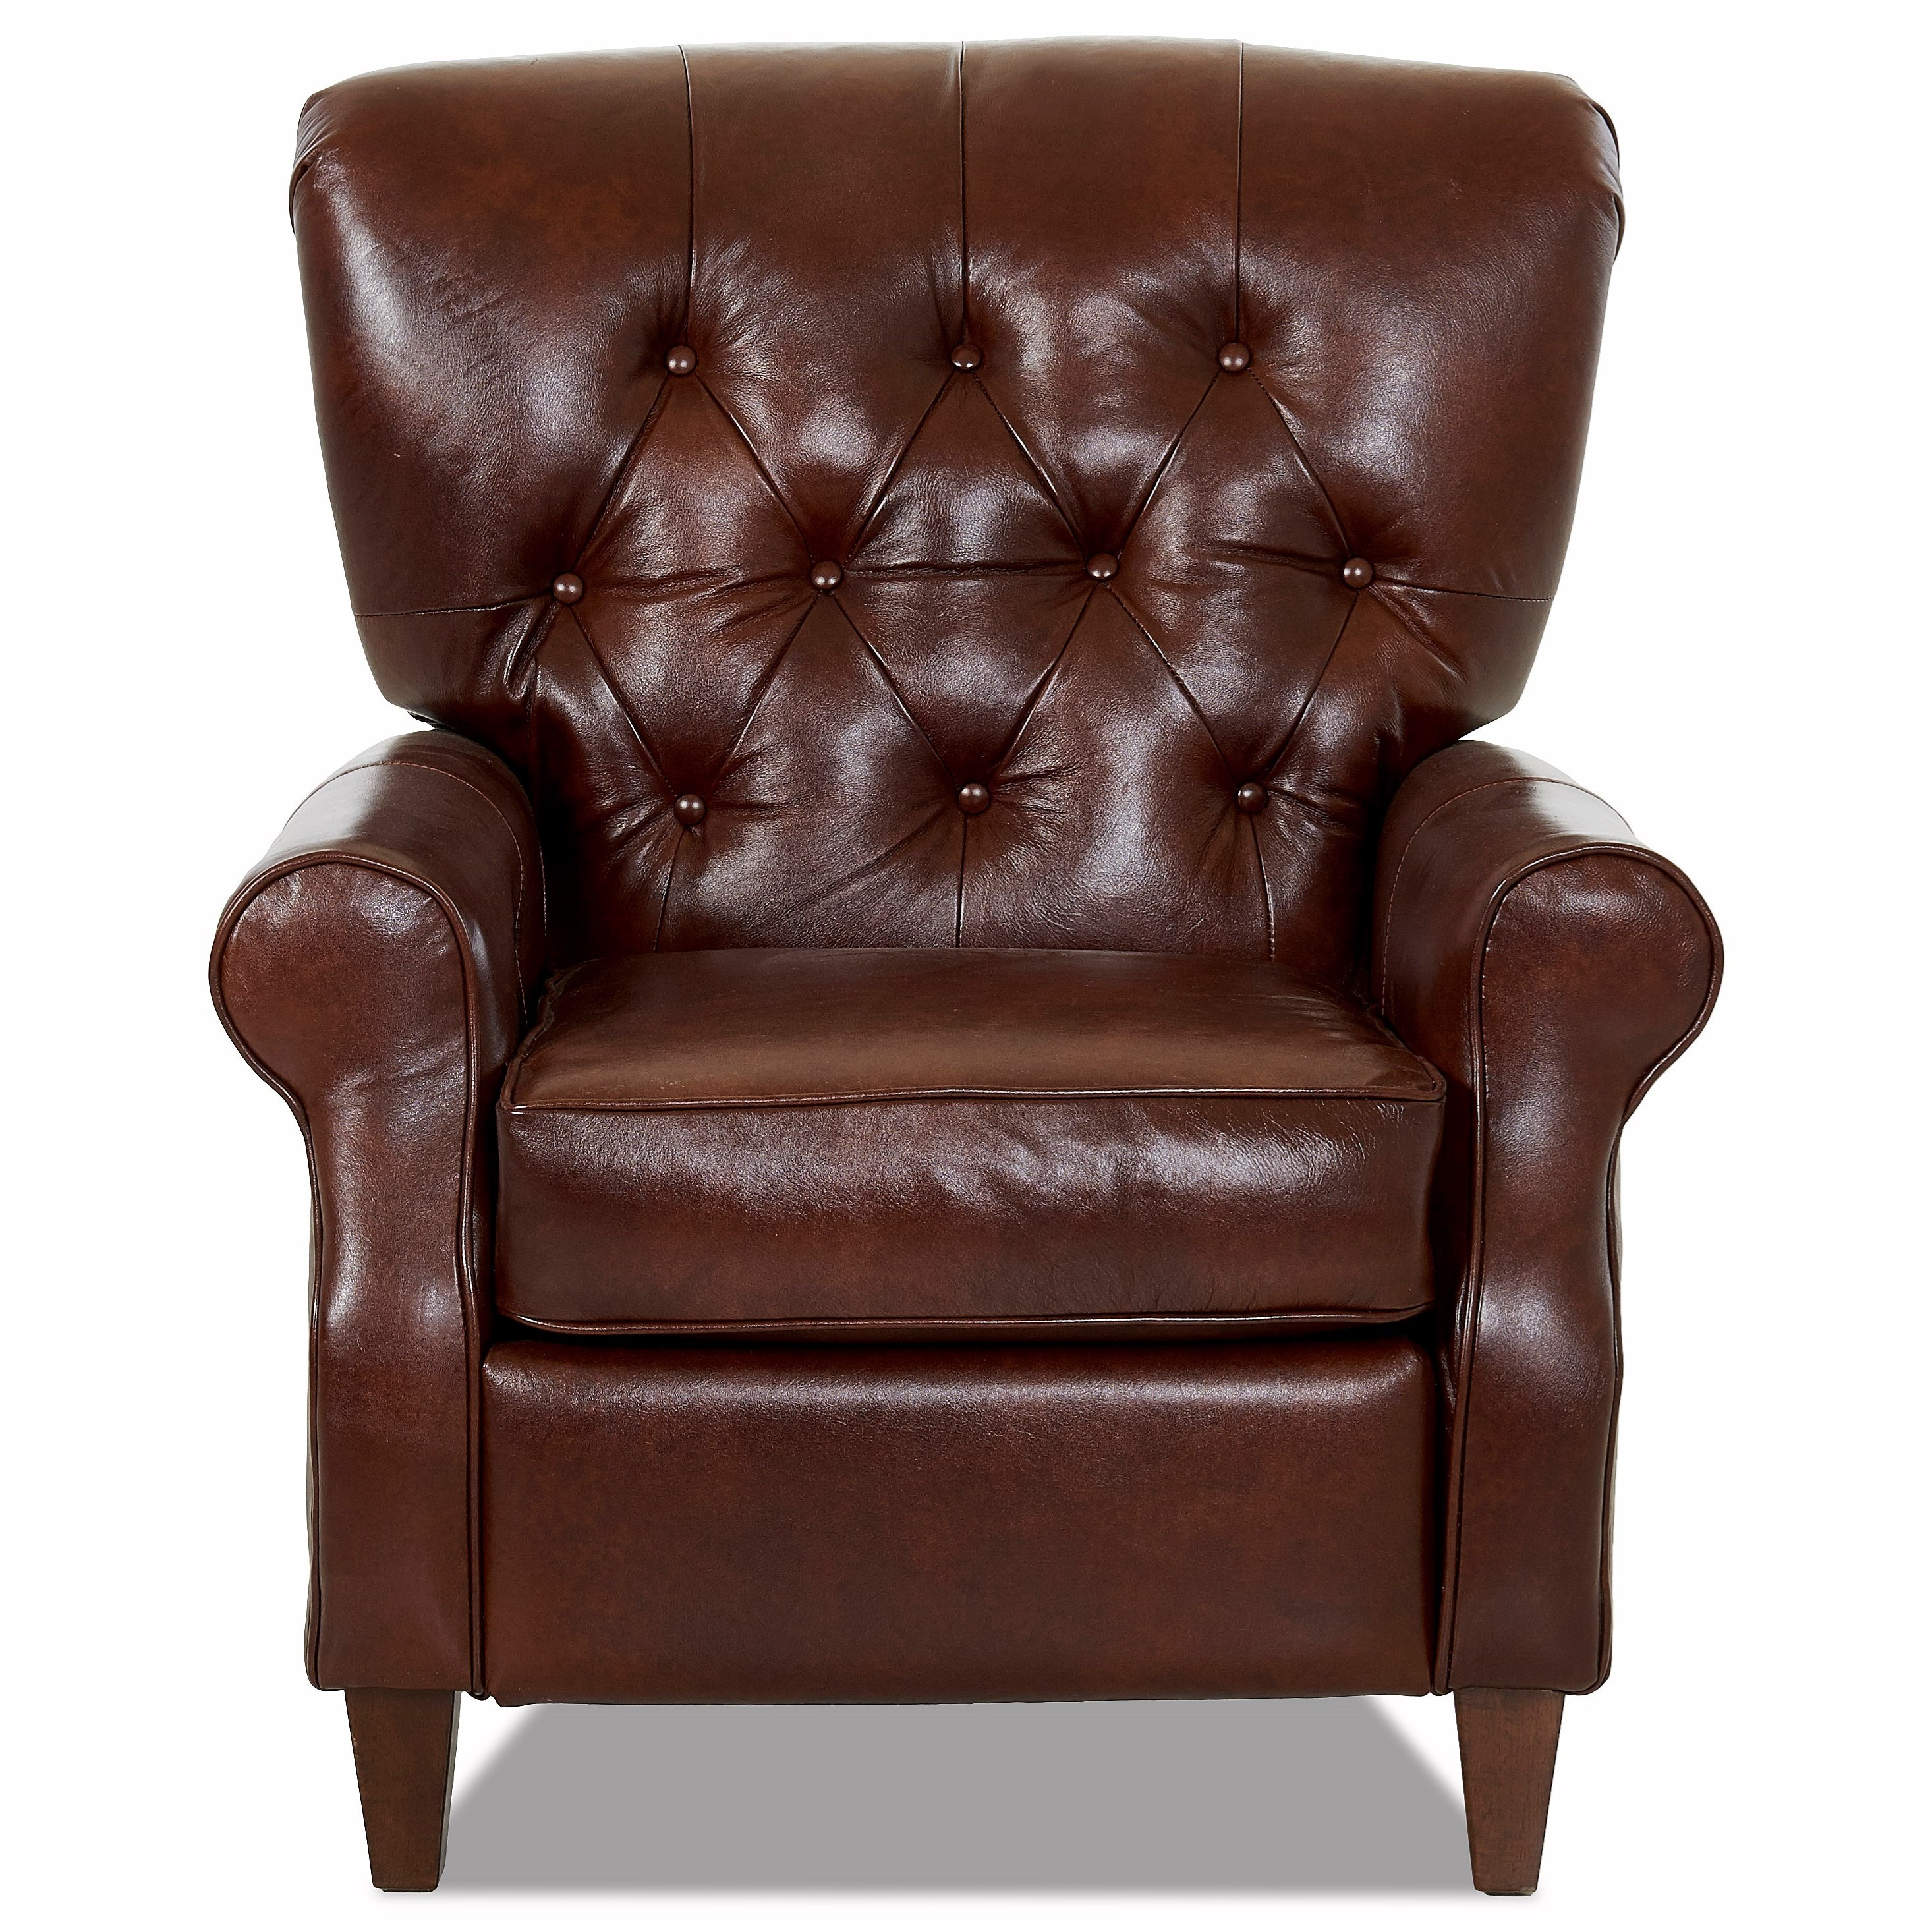 Traditional High Leg Recliner with Tufted Back